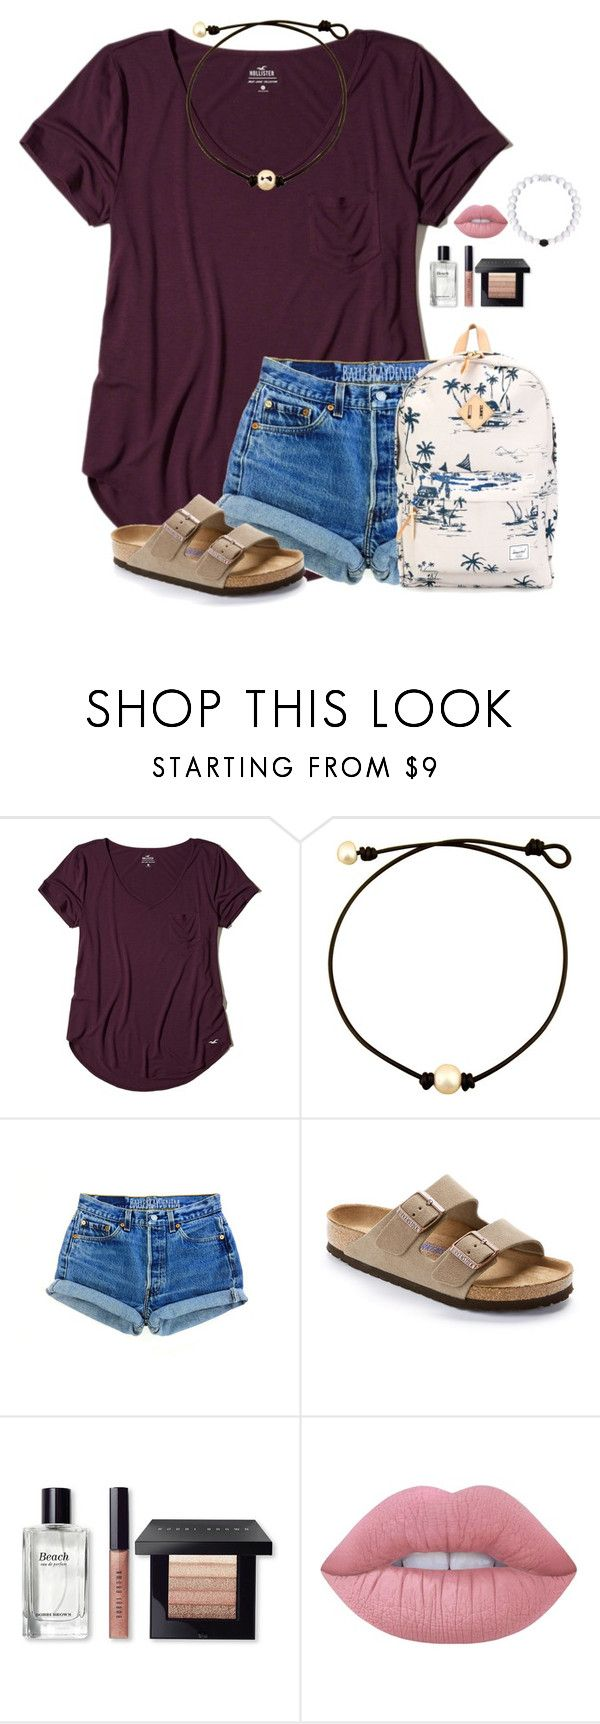 """Monday at school"" by victoriaann34 ❤ liked on Polyvore featuring Hollister Co., Birkenstock, Bobbi Brown Cosmetics, Lime Crime and Herschel Supply Co."